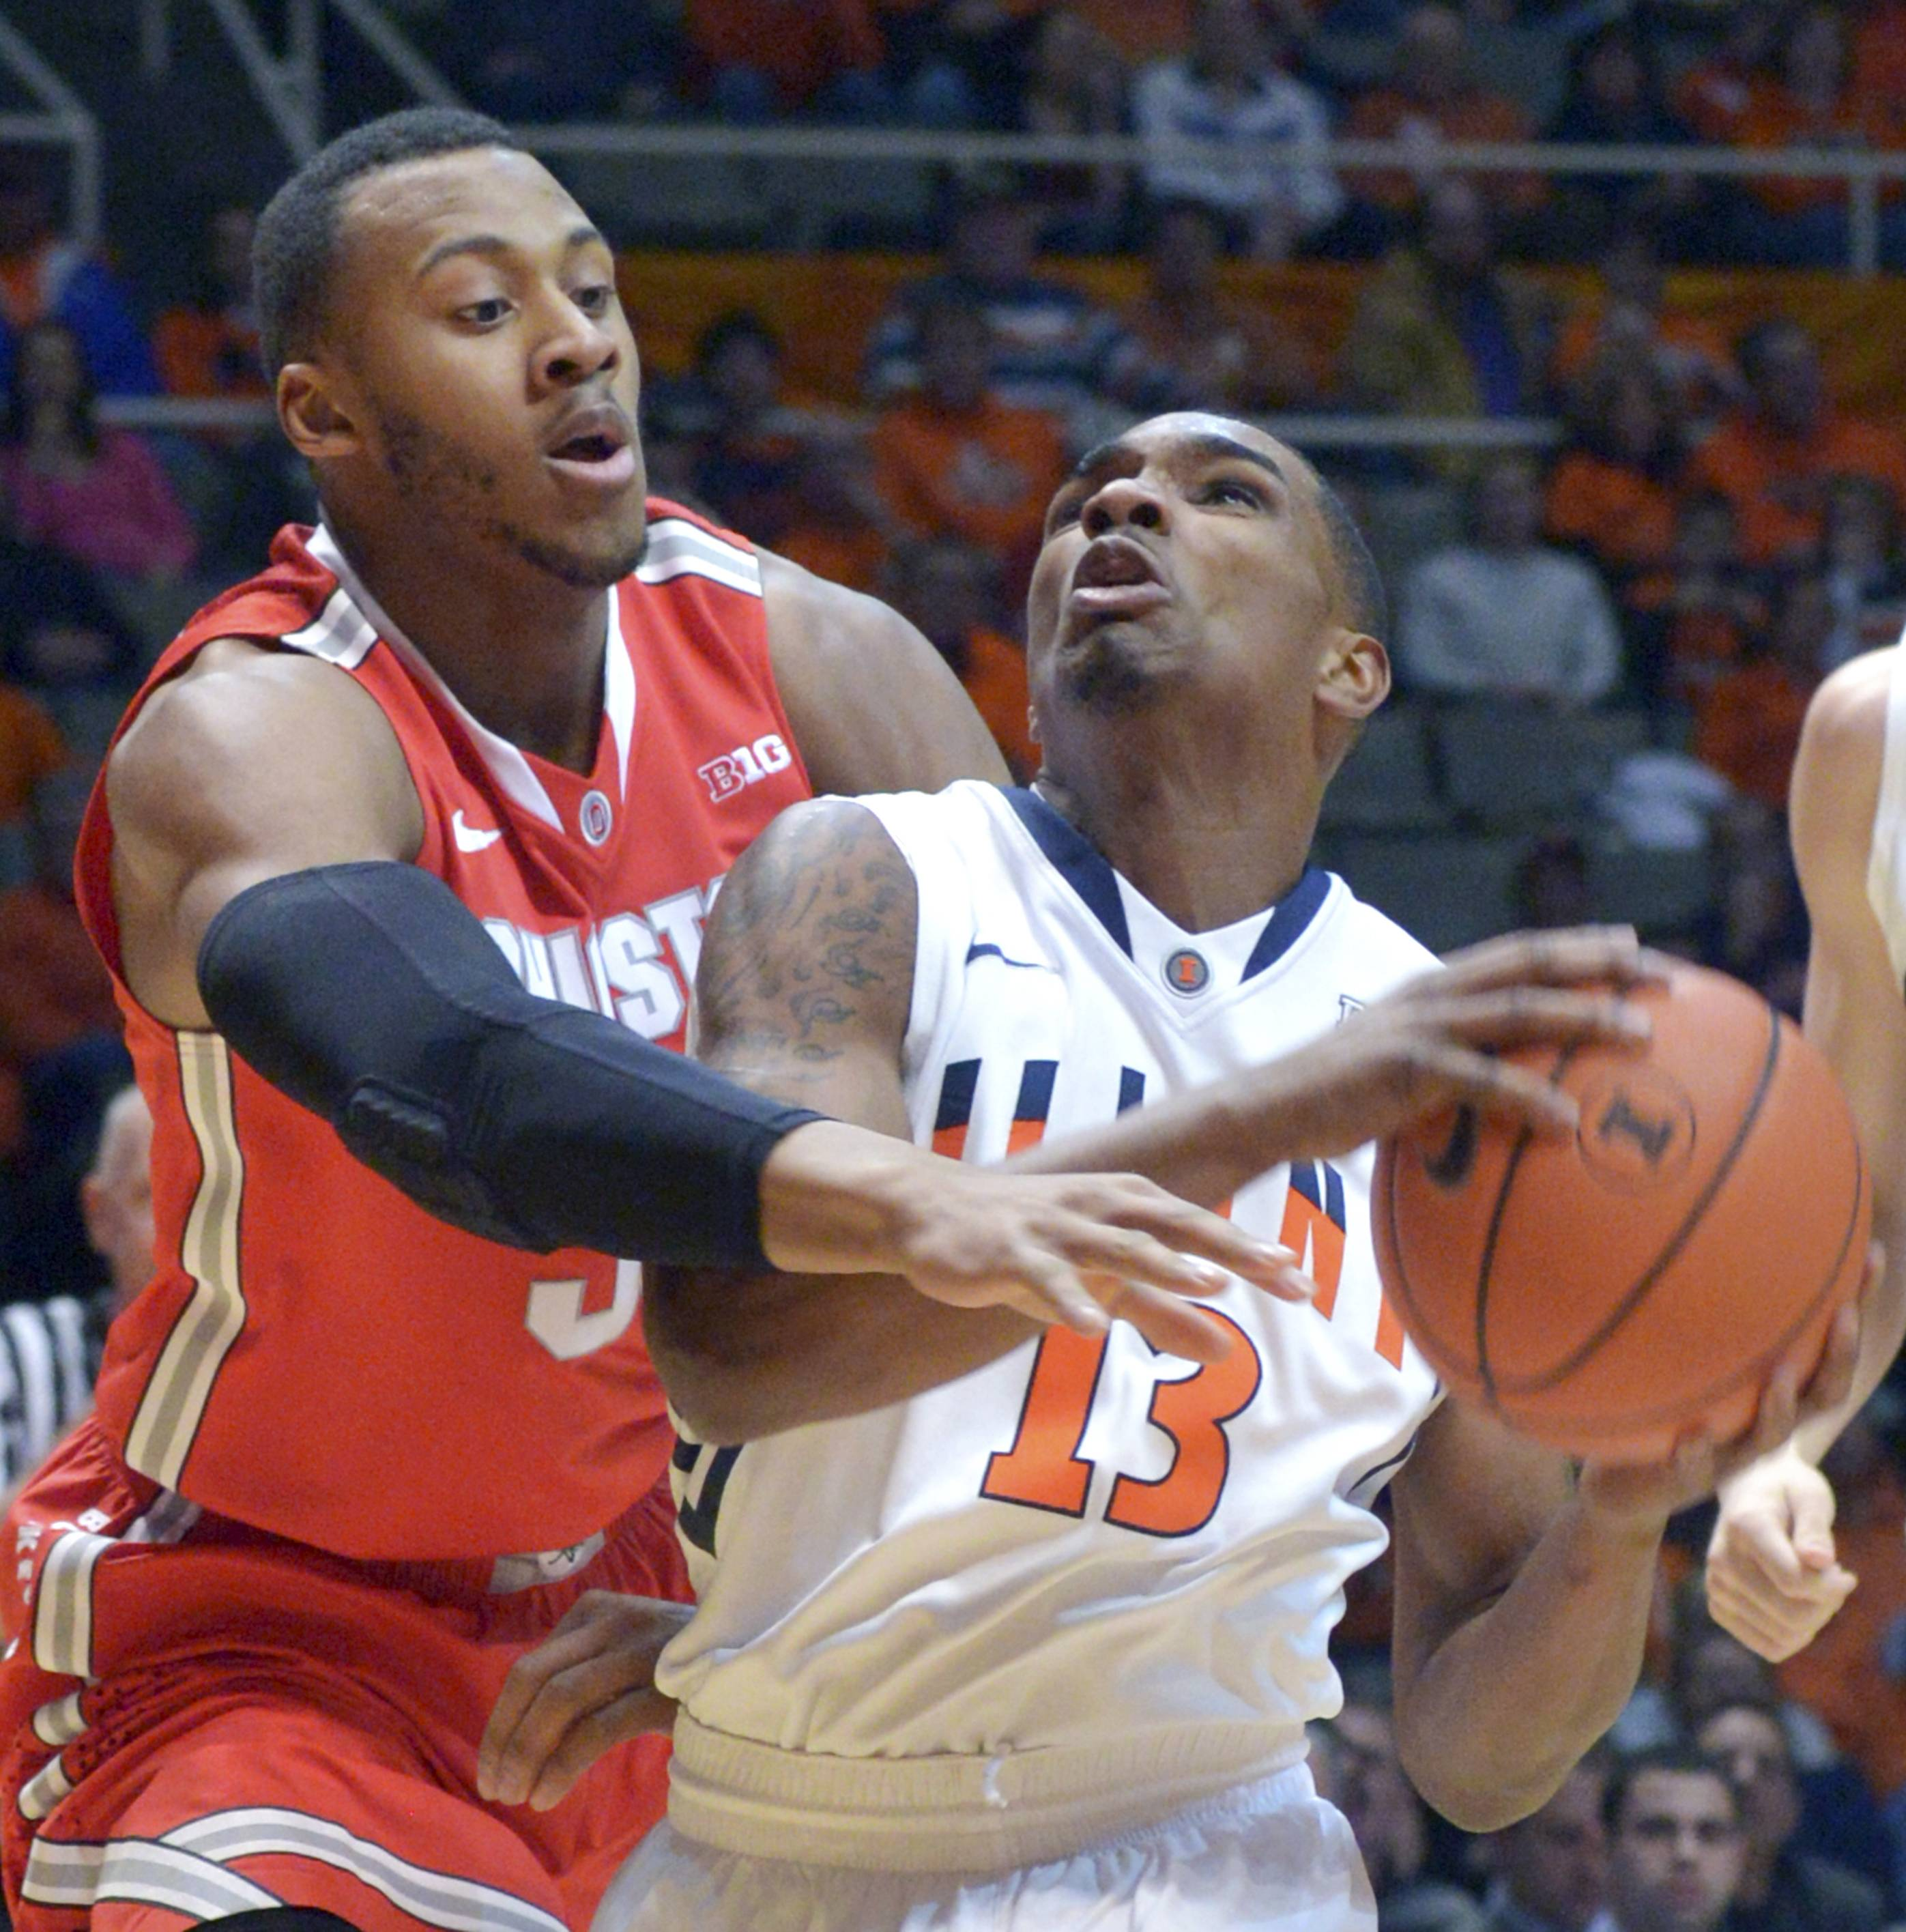 Ohio State's center Trey McDonald (55) defends Illinois' Tracy Abrams (13) during Saturday night's game in Champaign. The Illini lost, 48-39.